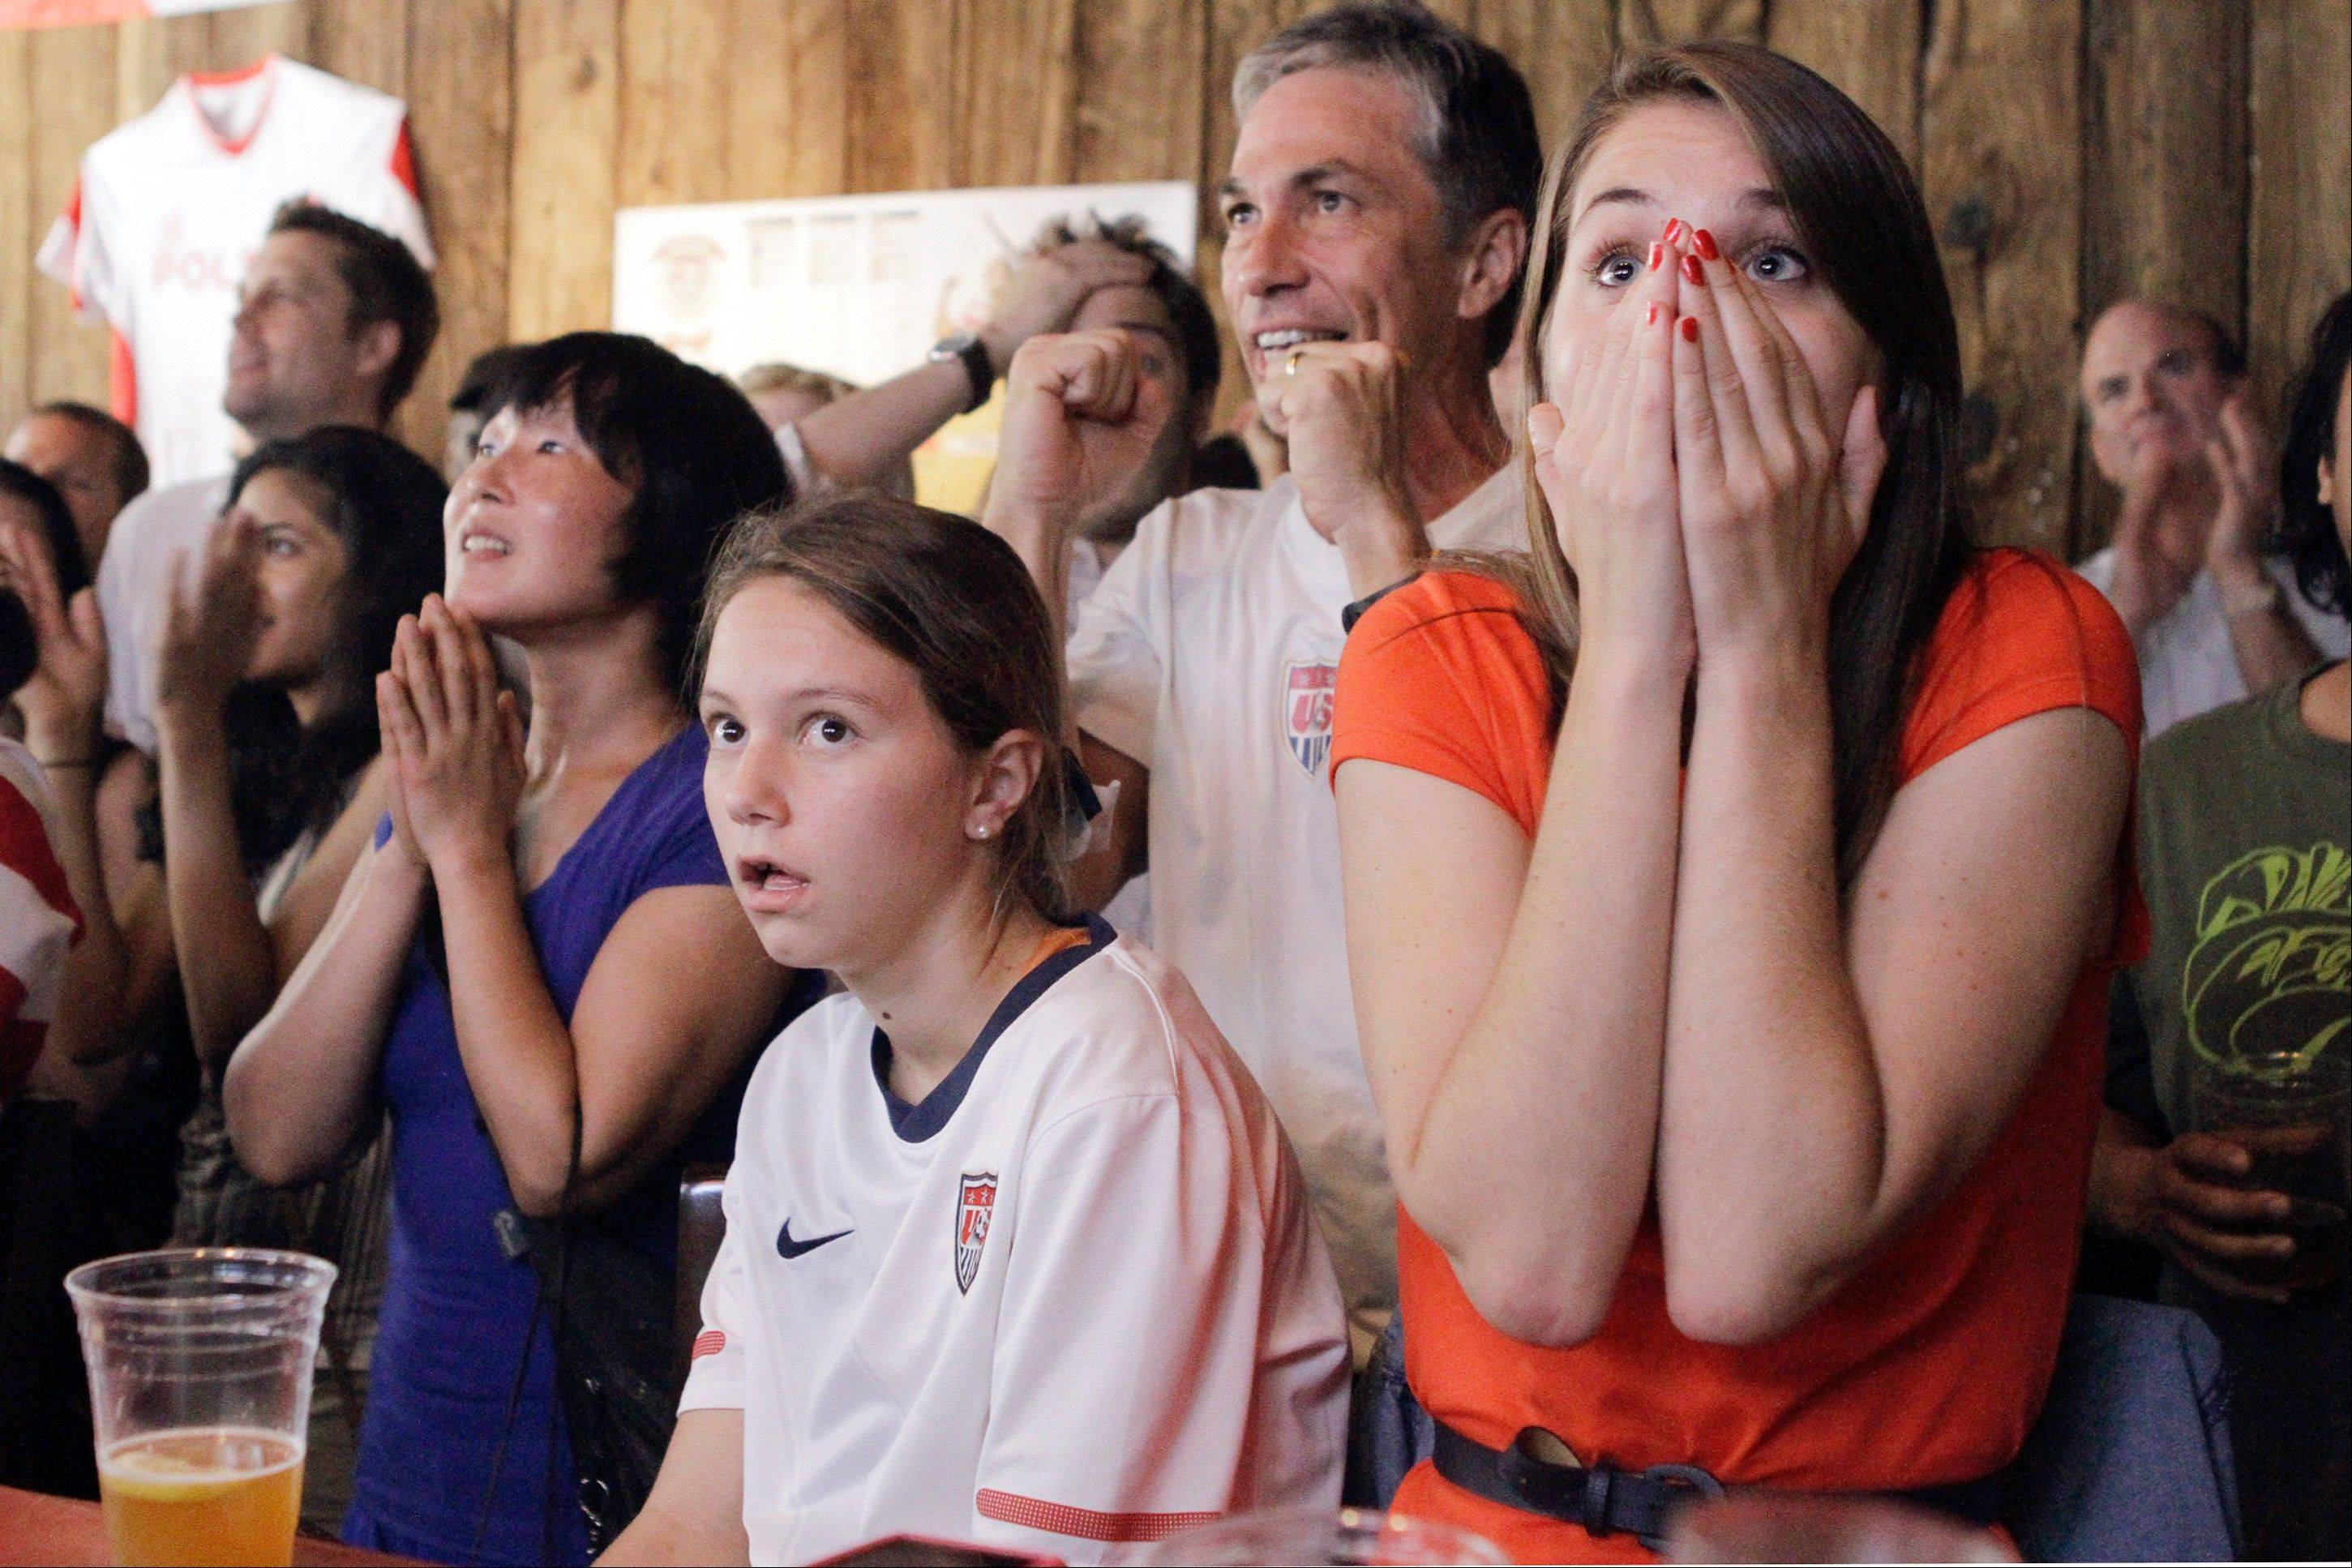 Viewers react as they watch a television broadcast of the U.S. women's soccer team taking on Japan in the gold medal match at the 2012 London Summer Olympics Thursday, at Nevada Smiths bar in New York.